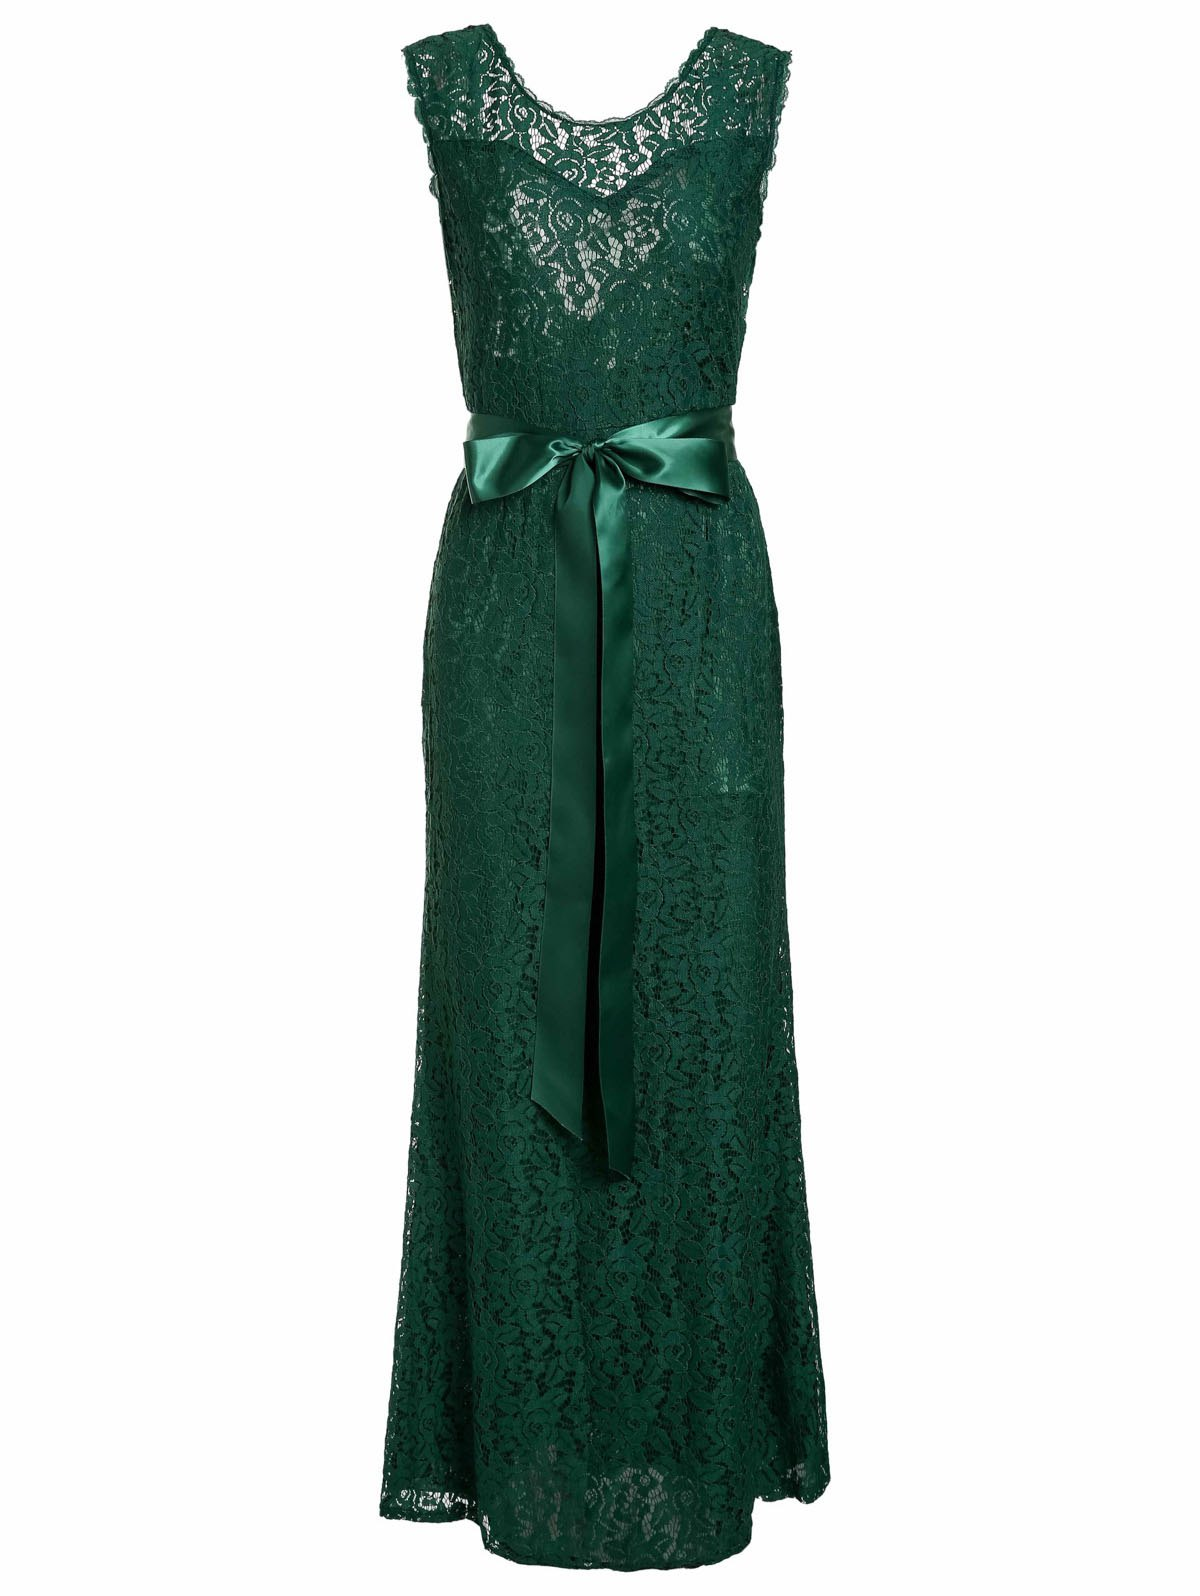 Chci Sleeveless V-Shape Backless Hollow Out Lace Maxi Dress For Women